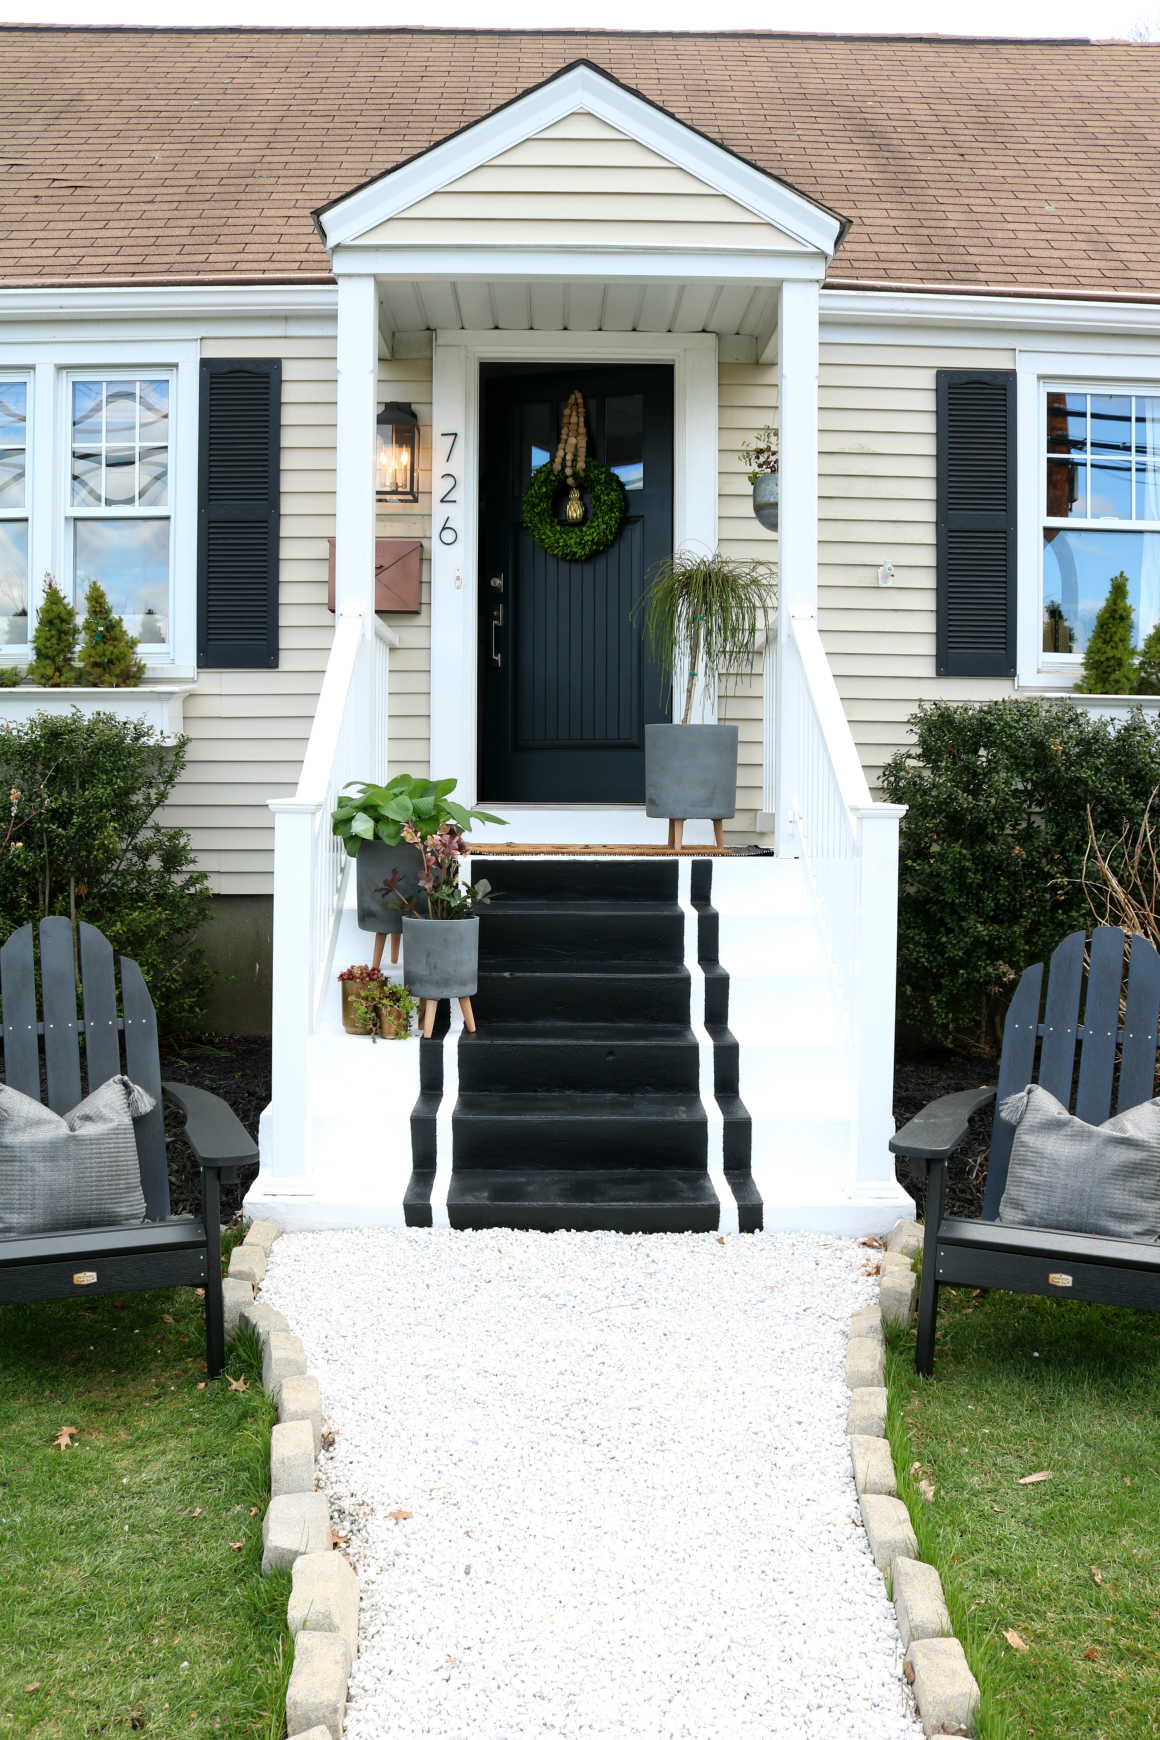 Small Front Porches Designs Front Porch Steps Porch Design: Front Porch Spring Reveal With Painted Steps